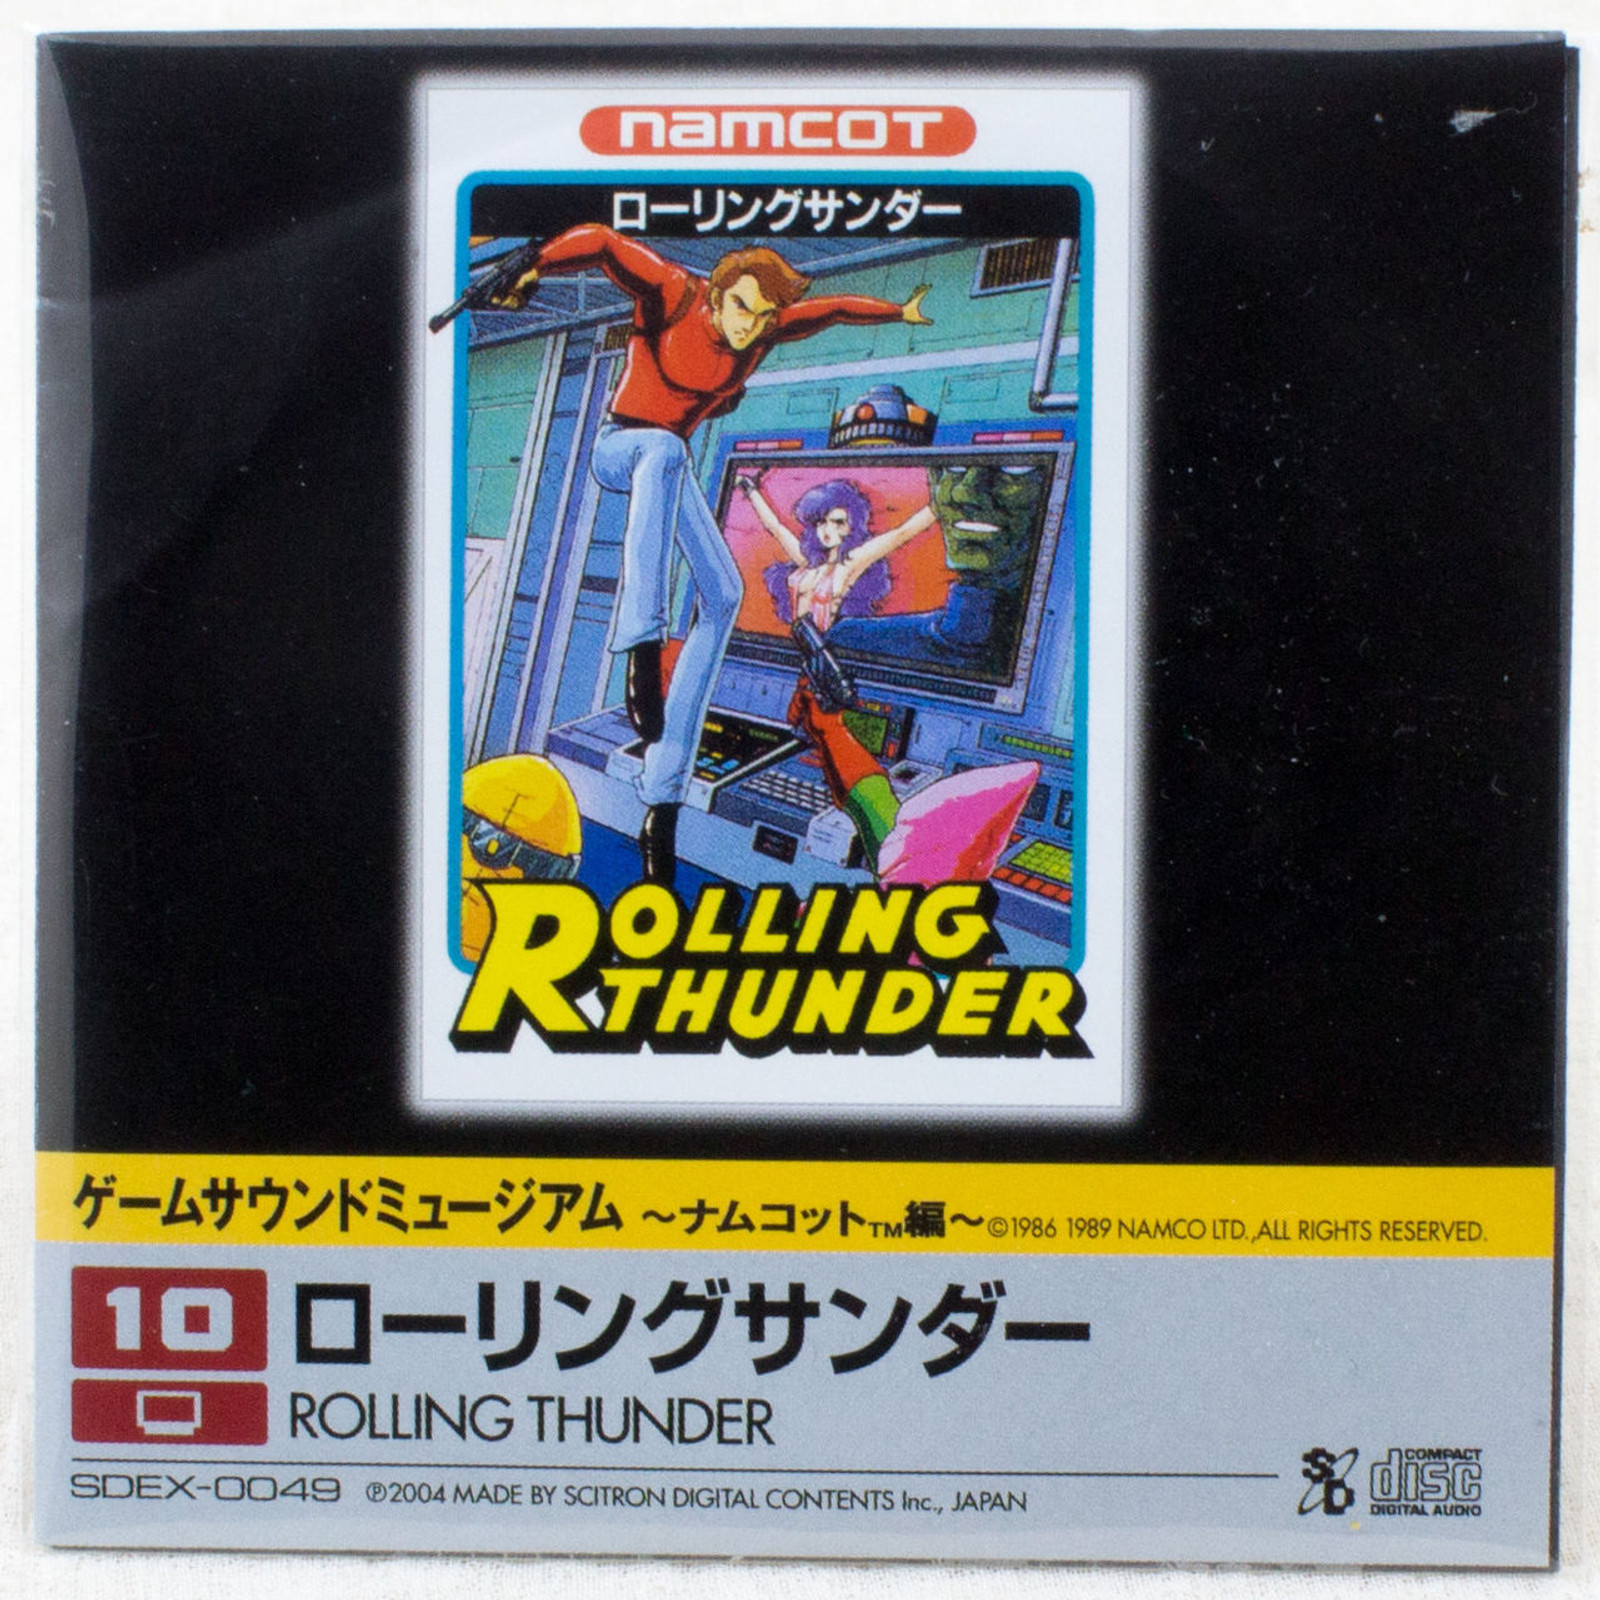 Rolling Thunder Game Sound Museum Namco #10 Music 8cm CD JAPAN FAMICOM NINTNEDO